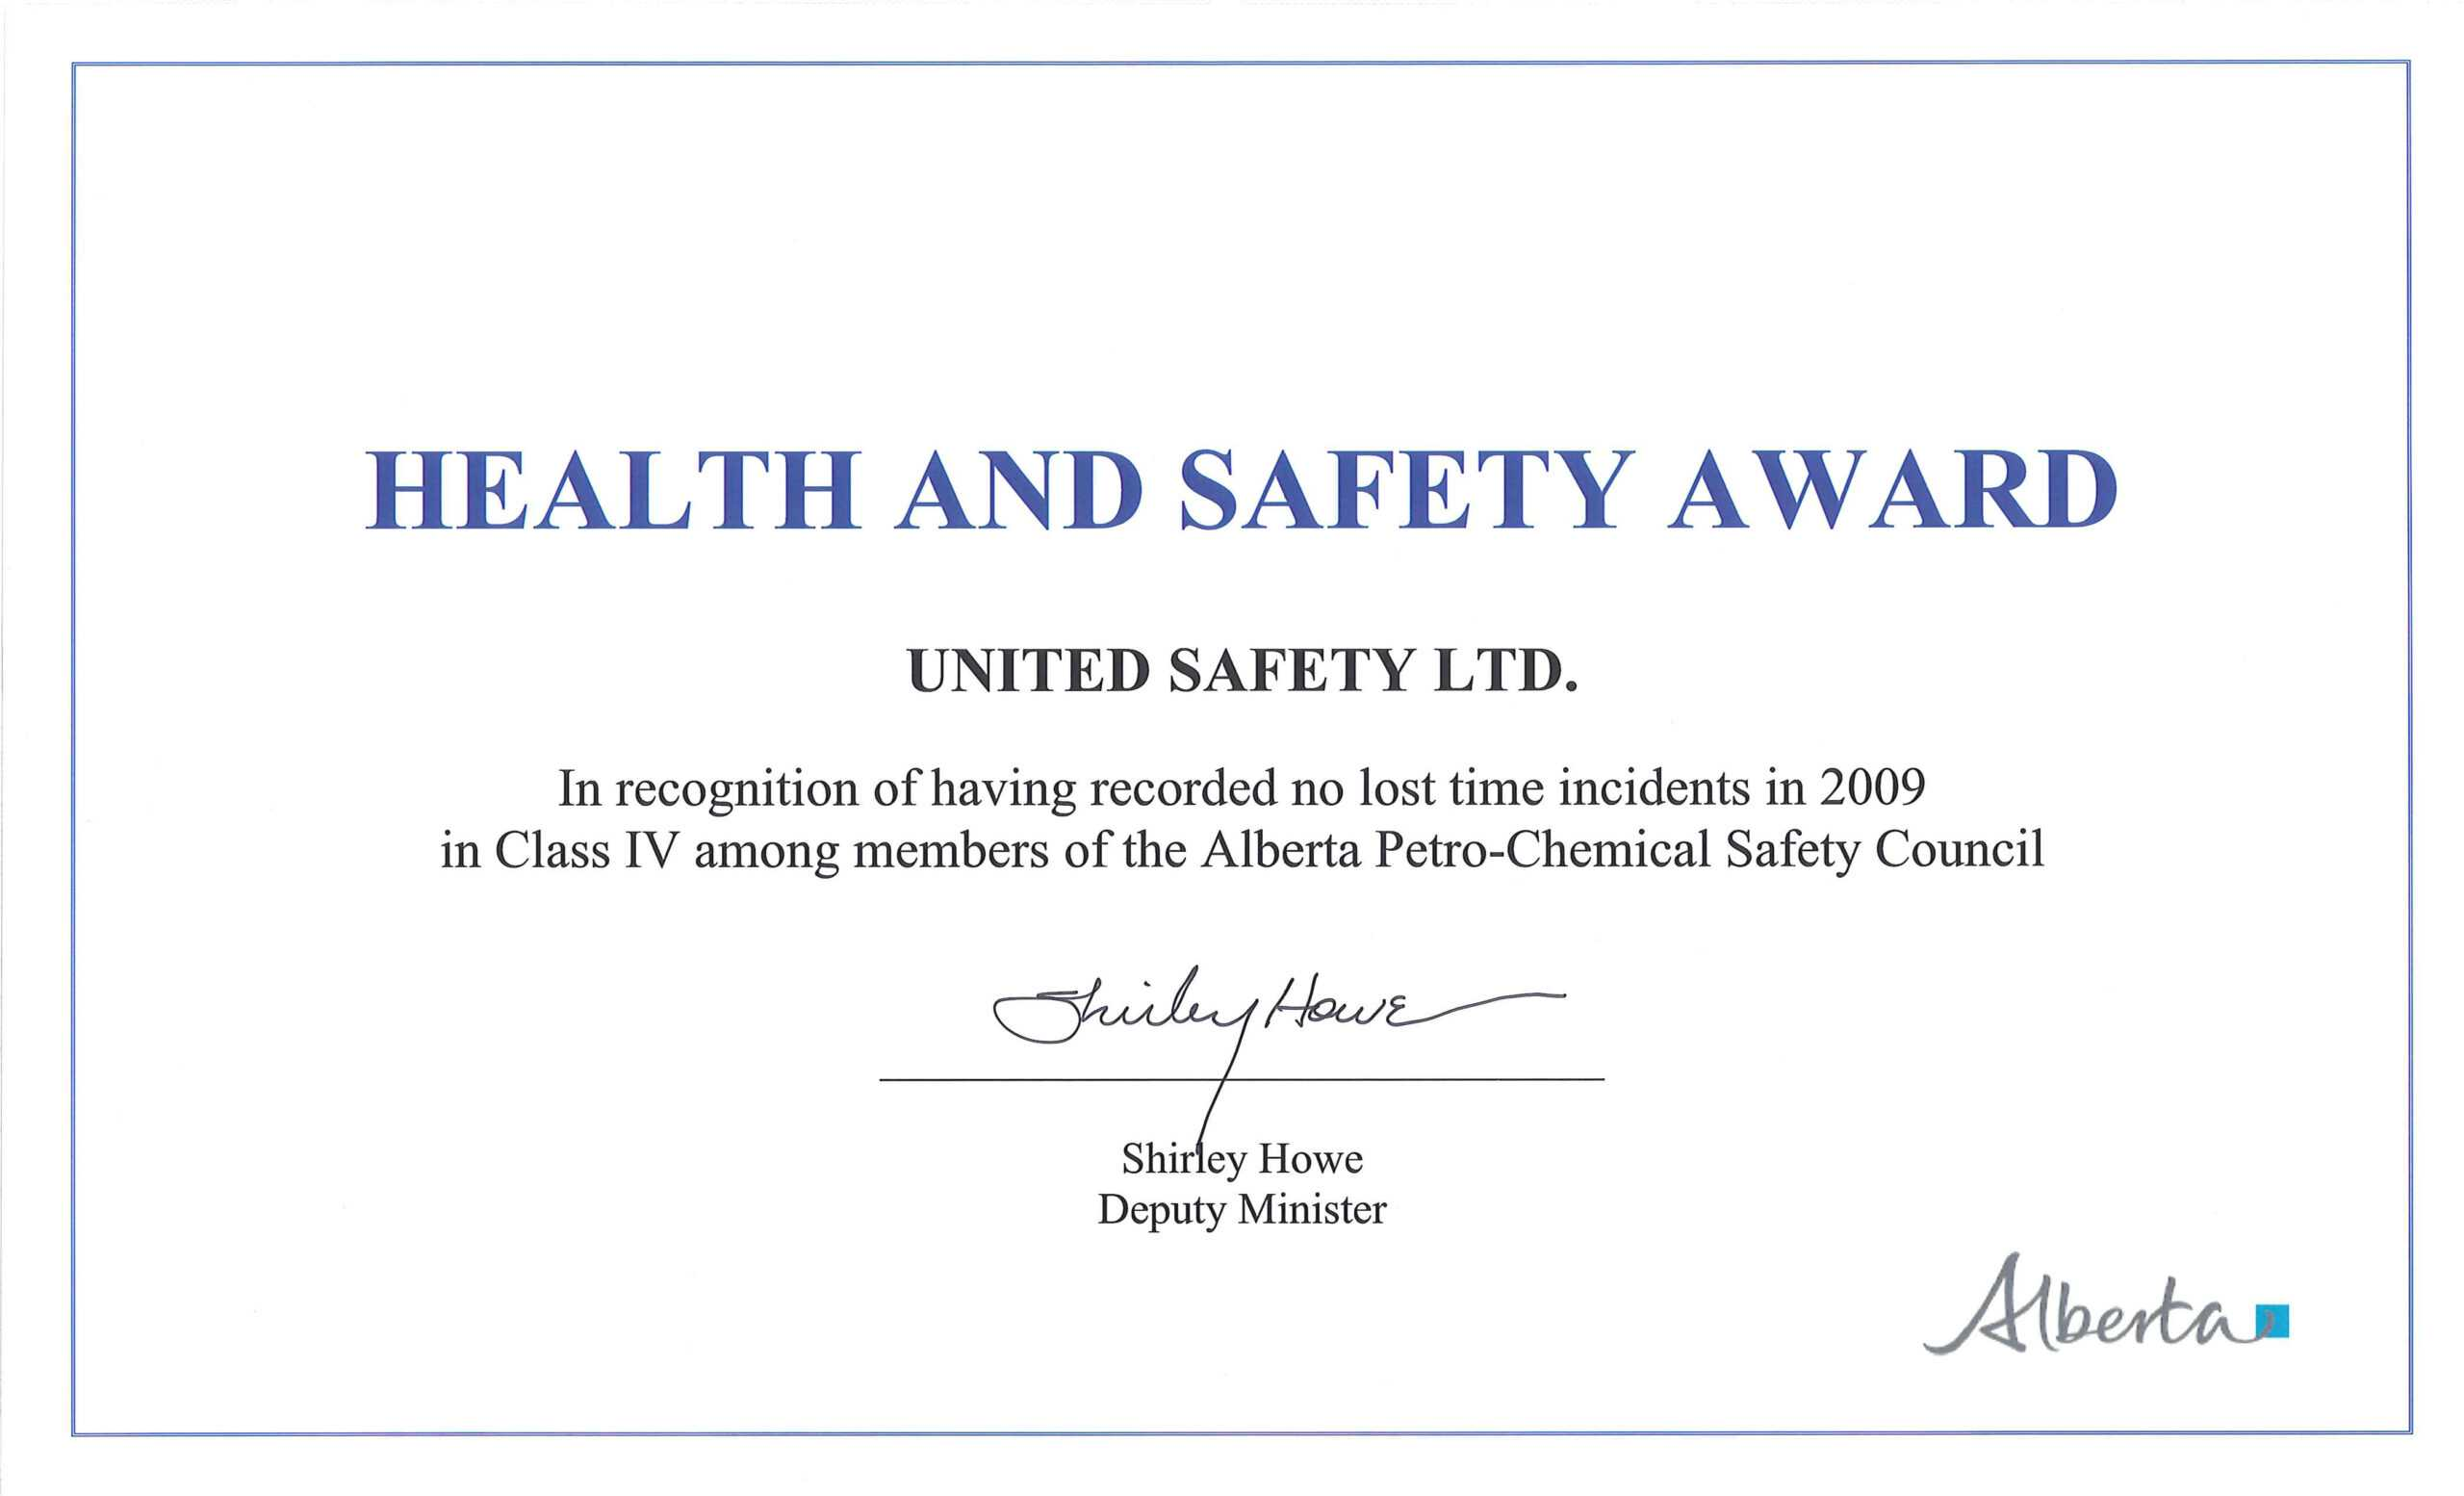 Awards And Recognition | United Safety Usa Throughout Life Saving Award Certificate Template